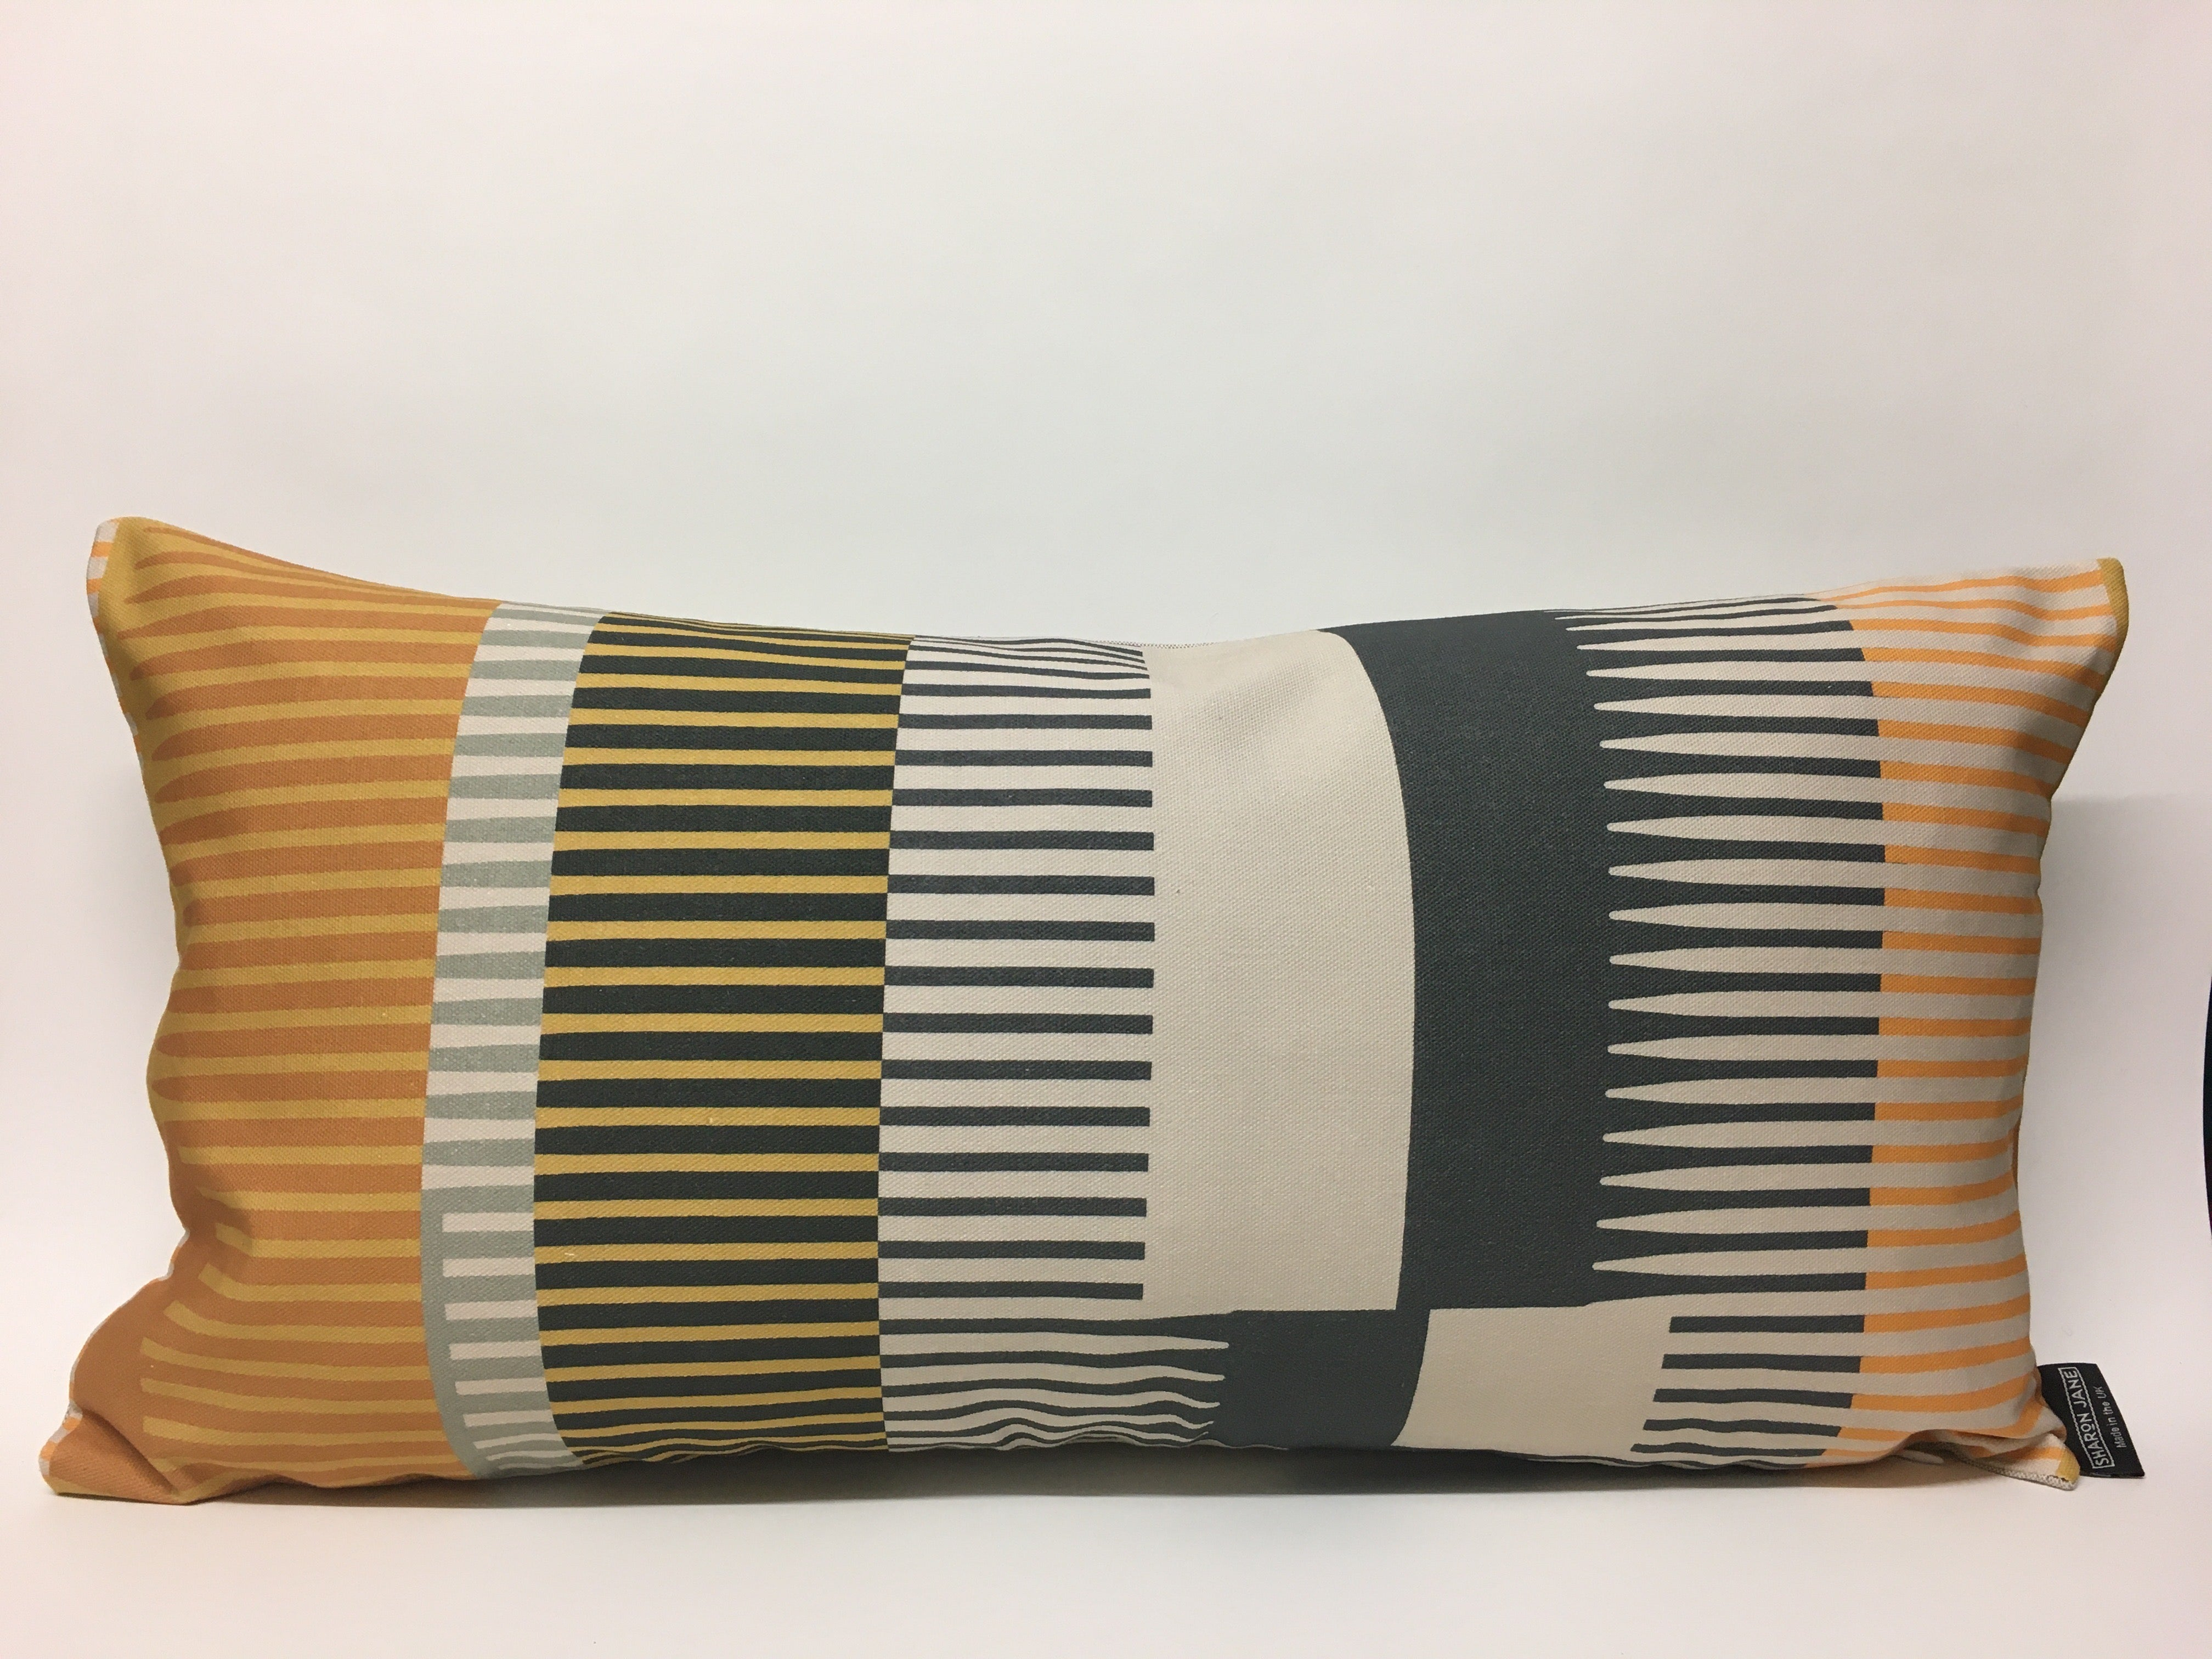 Combed Stripe Cushion - Ochre, graphite + mustard